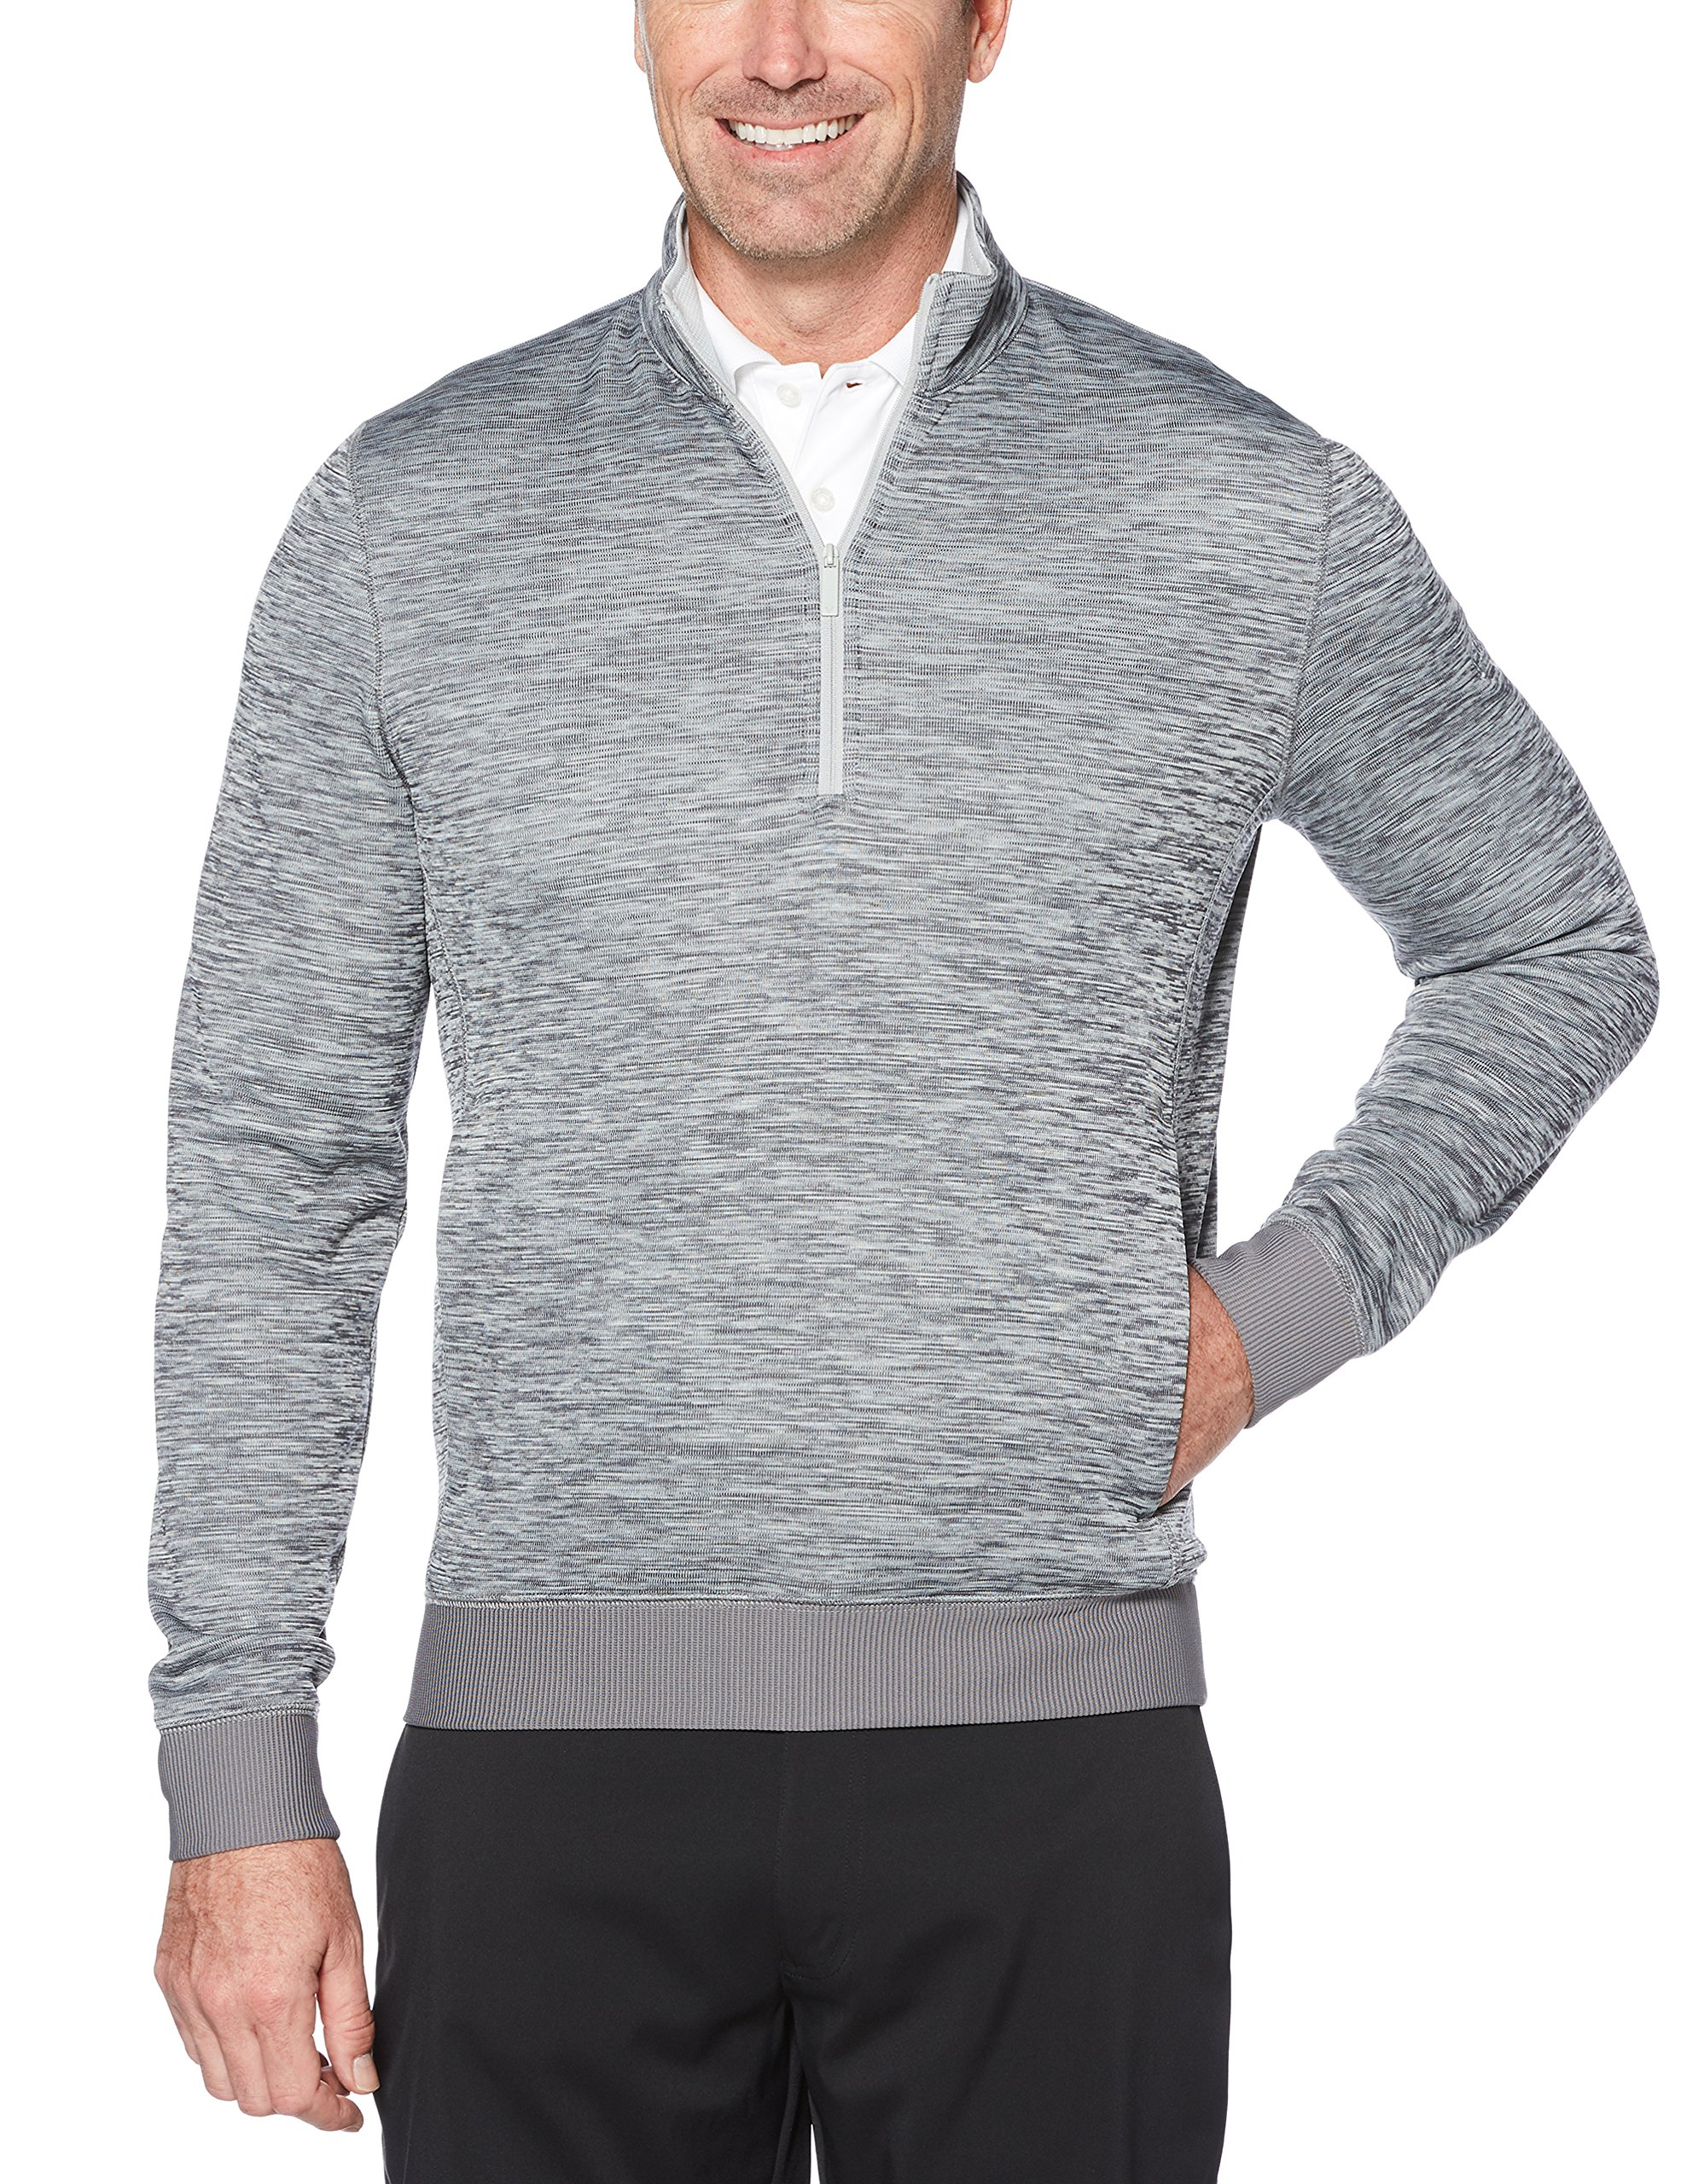 Callaway Men's Water Repellent 1/4 Zip Golf Pullover, Medium Grey Heather, 2X-Large by Callaway